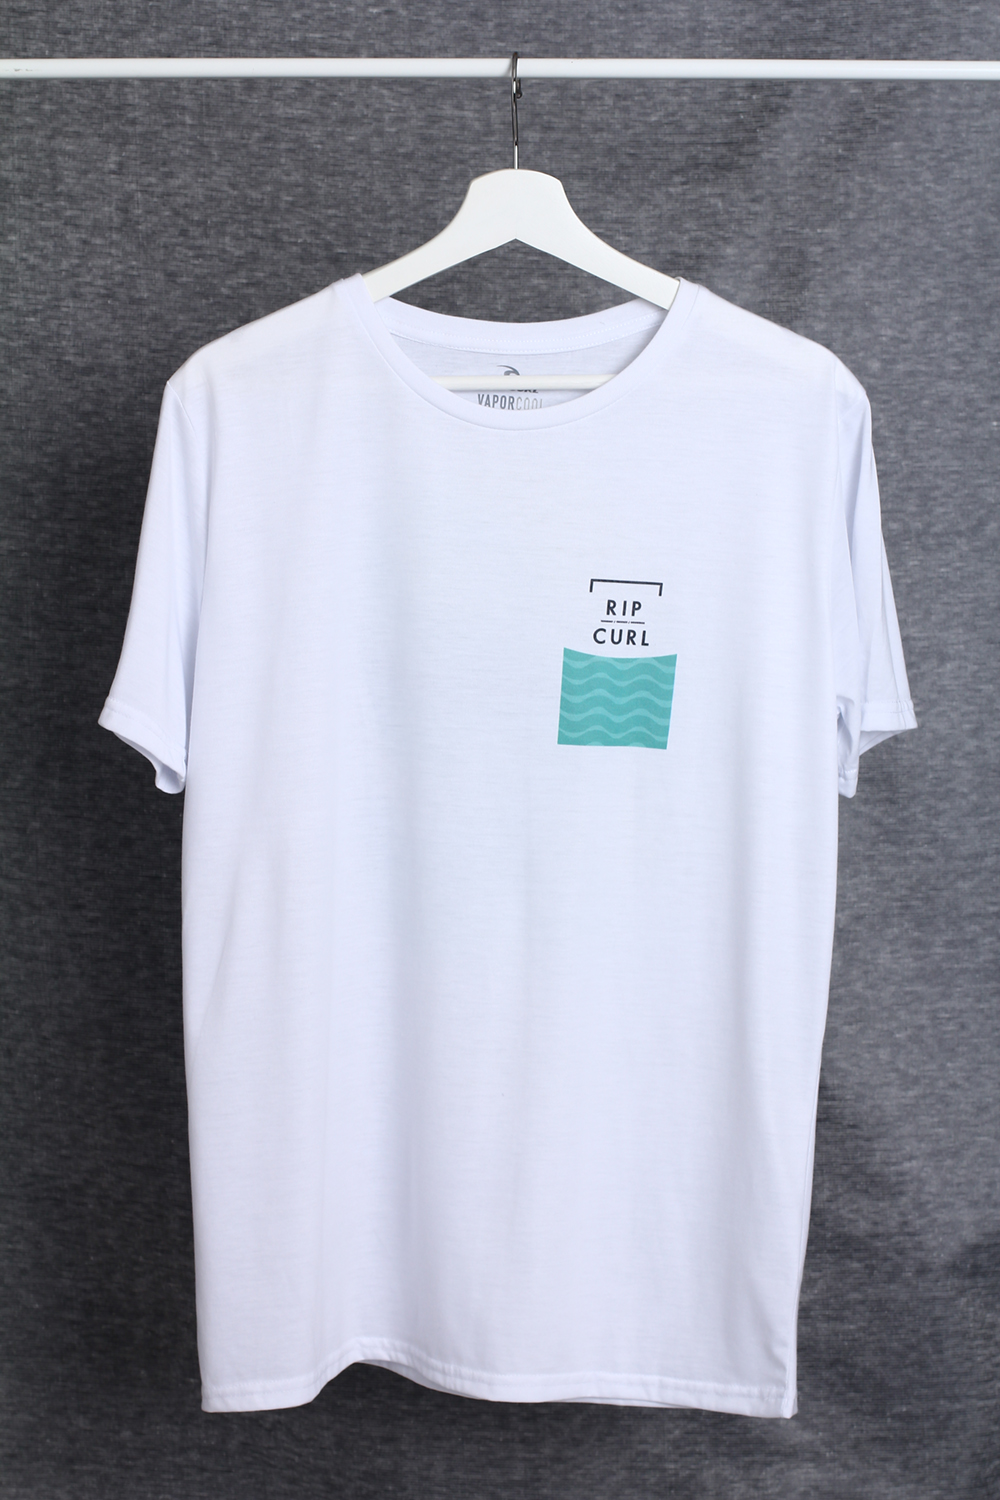 TO RIPCURL 590 uk S,M,L,XL